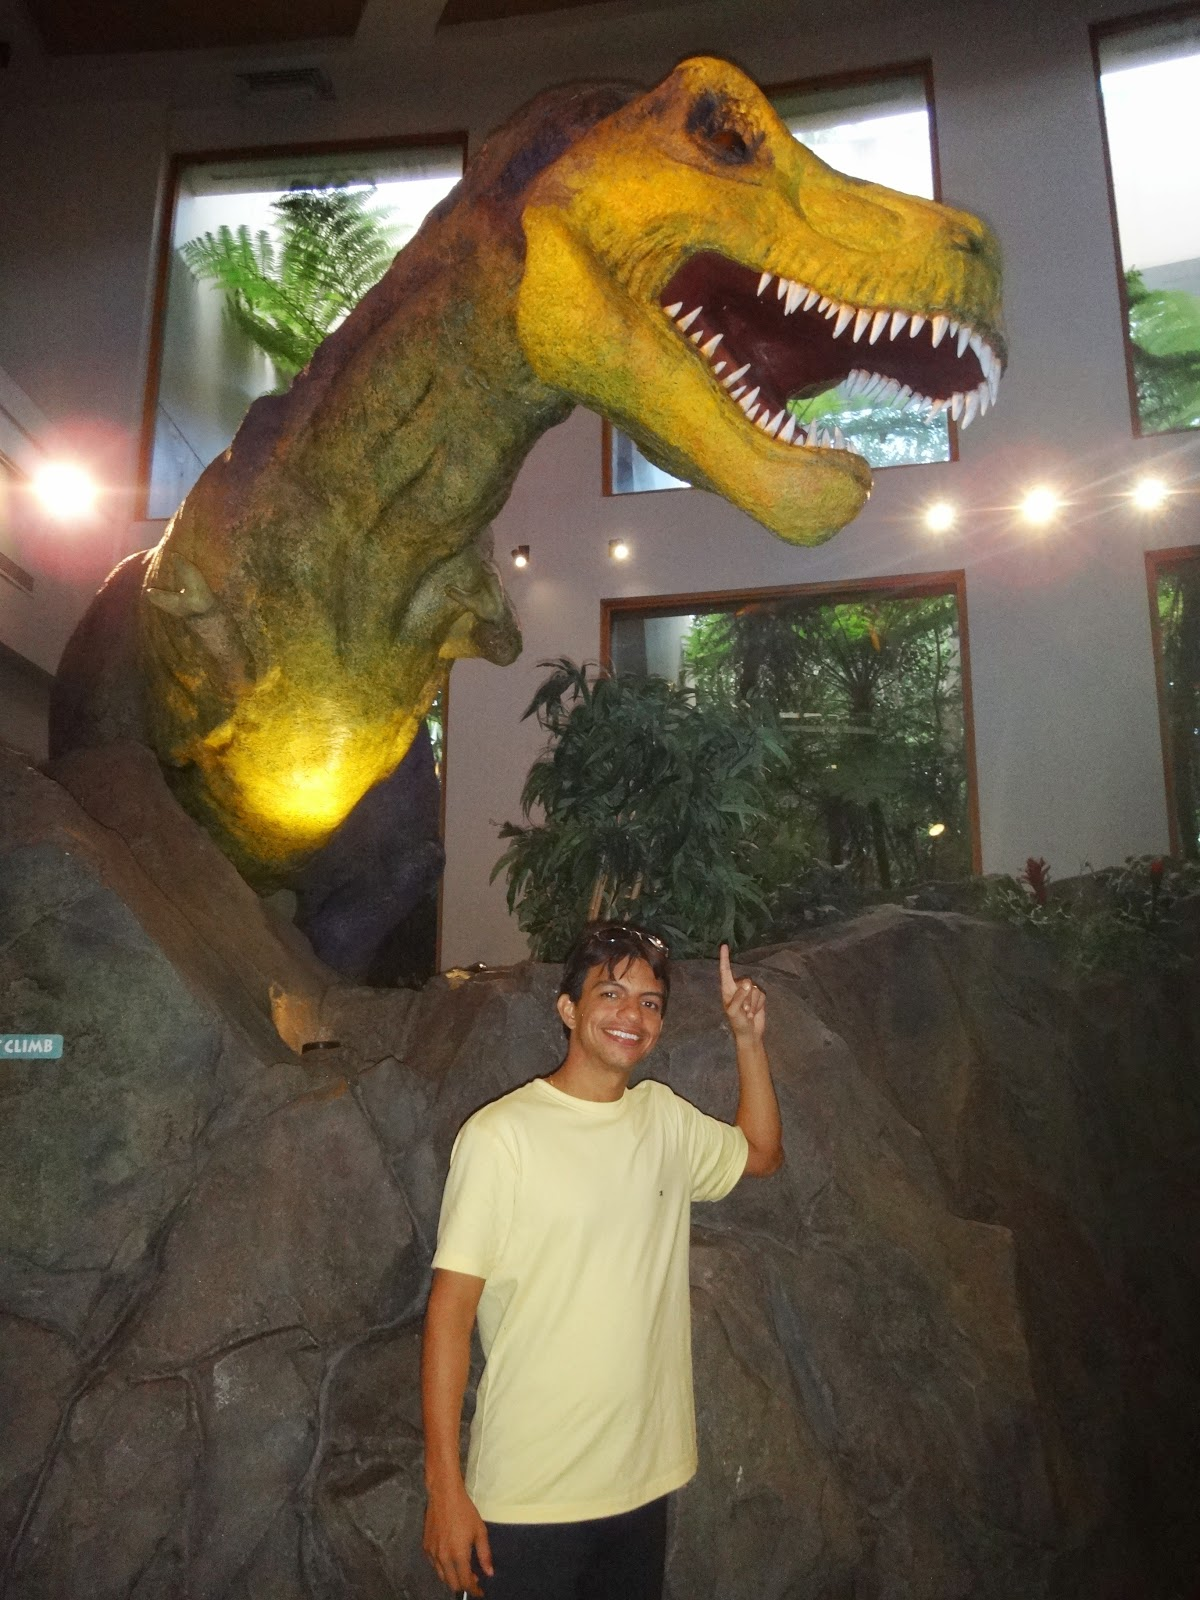 discovery center - jurassic park - island of adventure - orlando, estados unidos